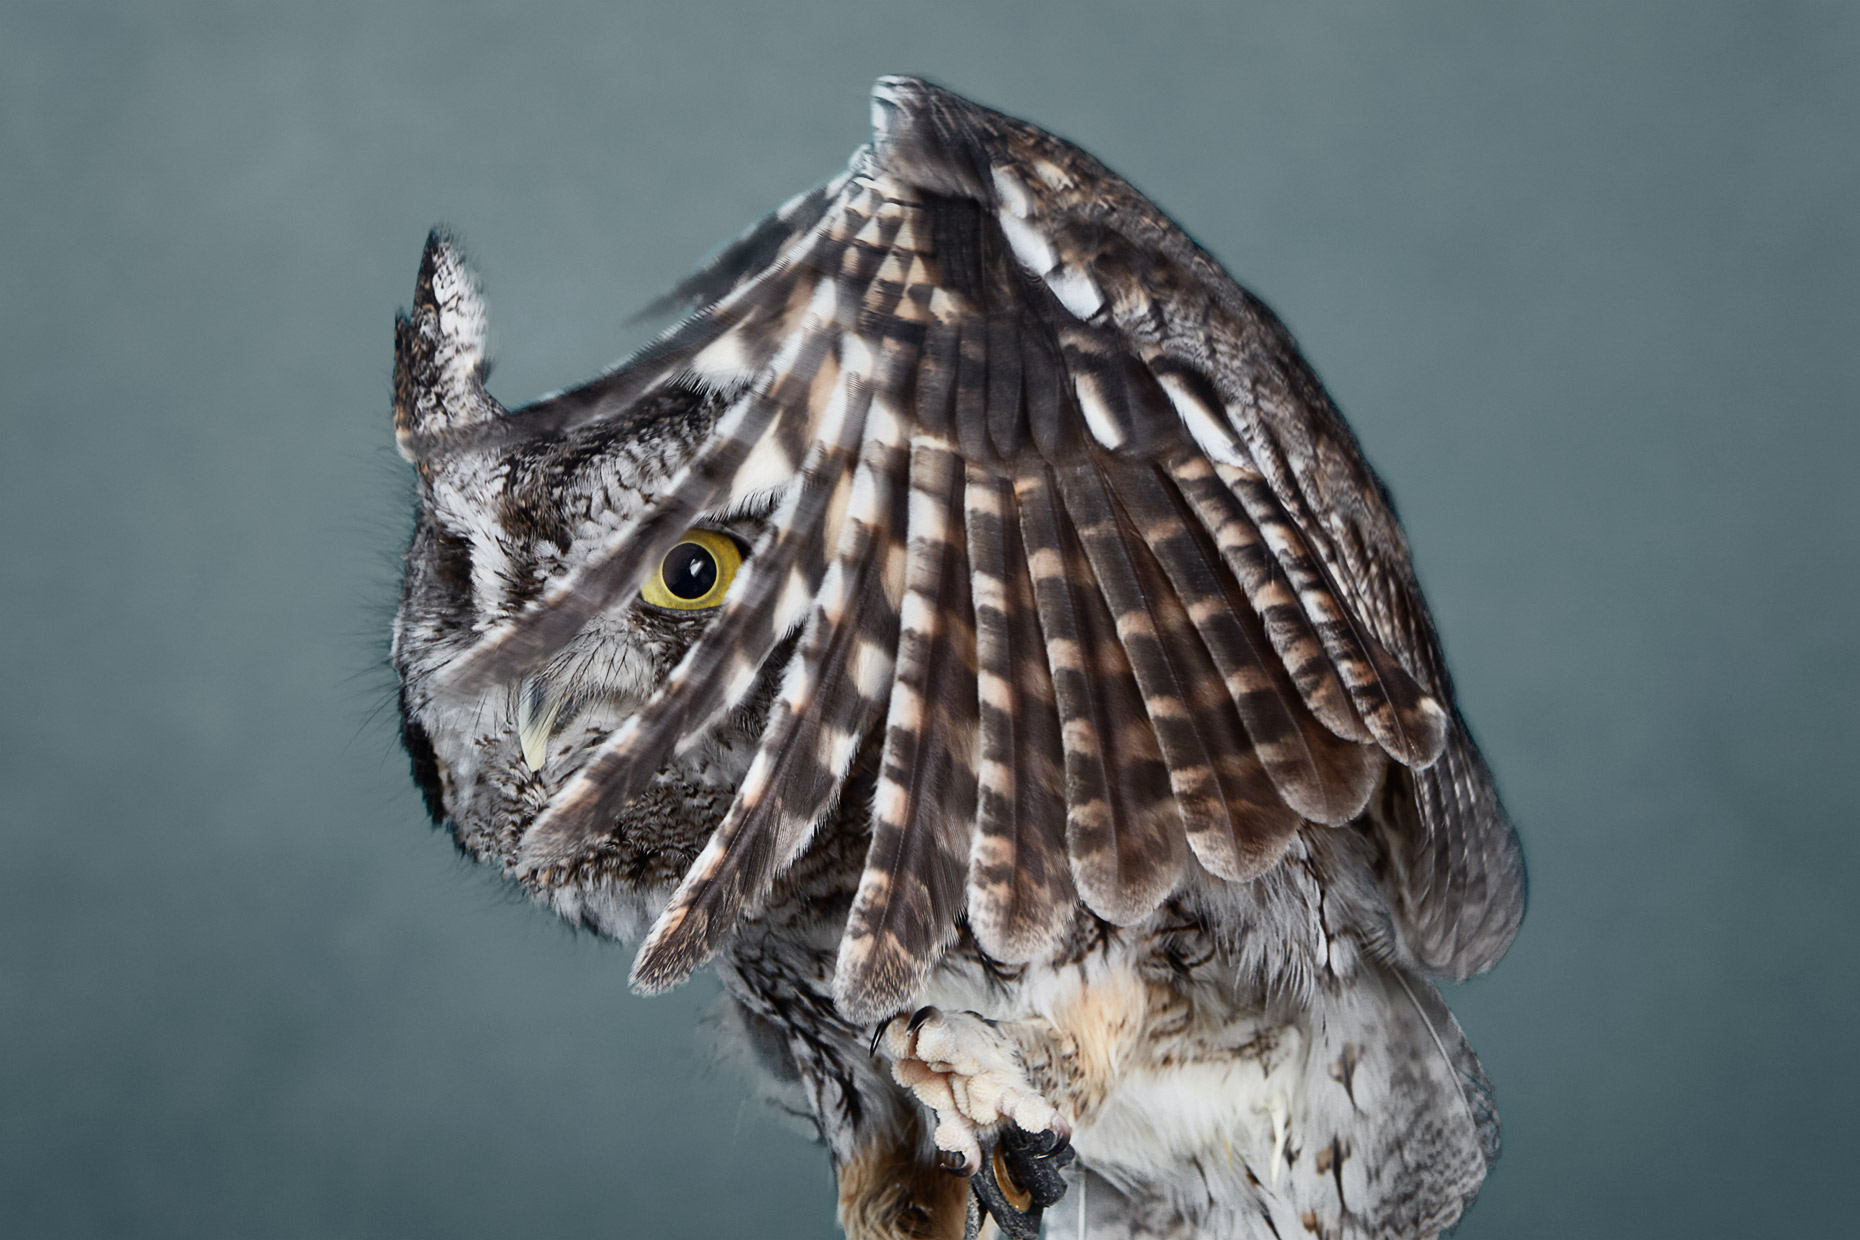 Screech Owl peering through its wing